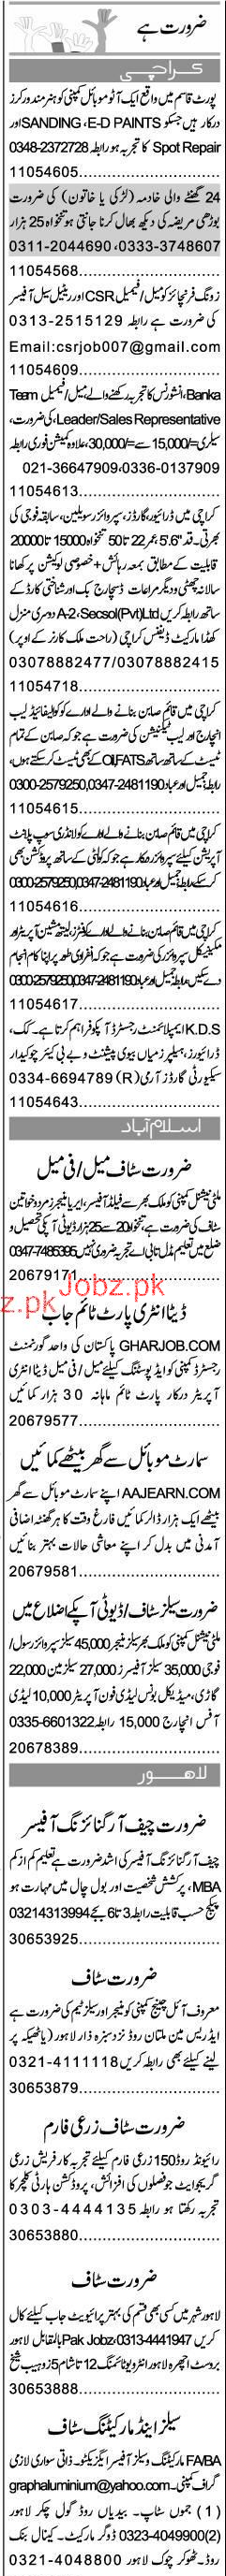 Sales Manager, Sales Officers, Sales Supervisors Wanted